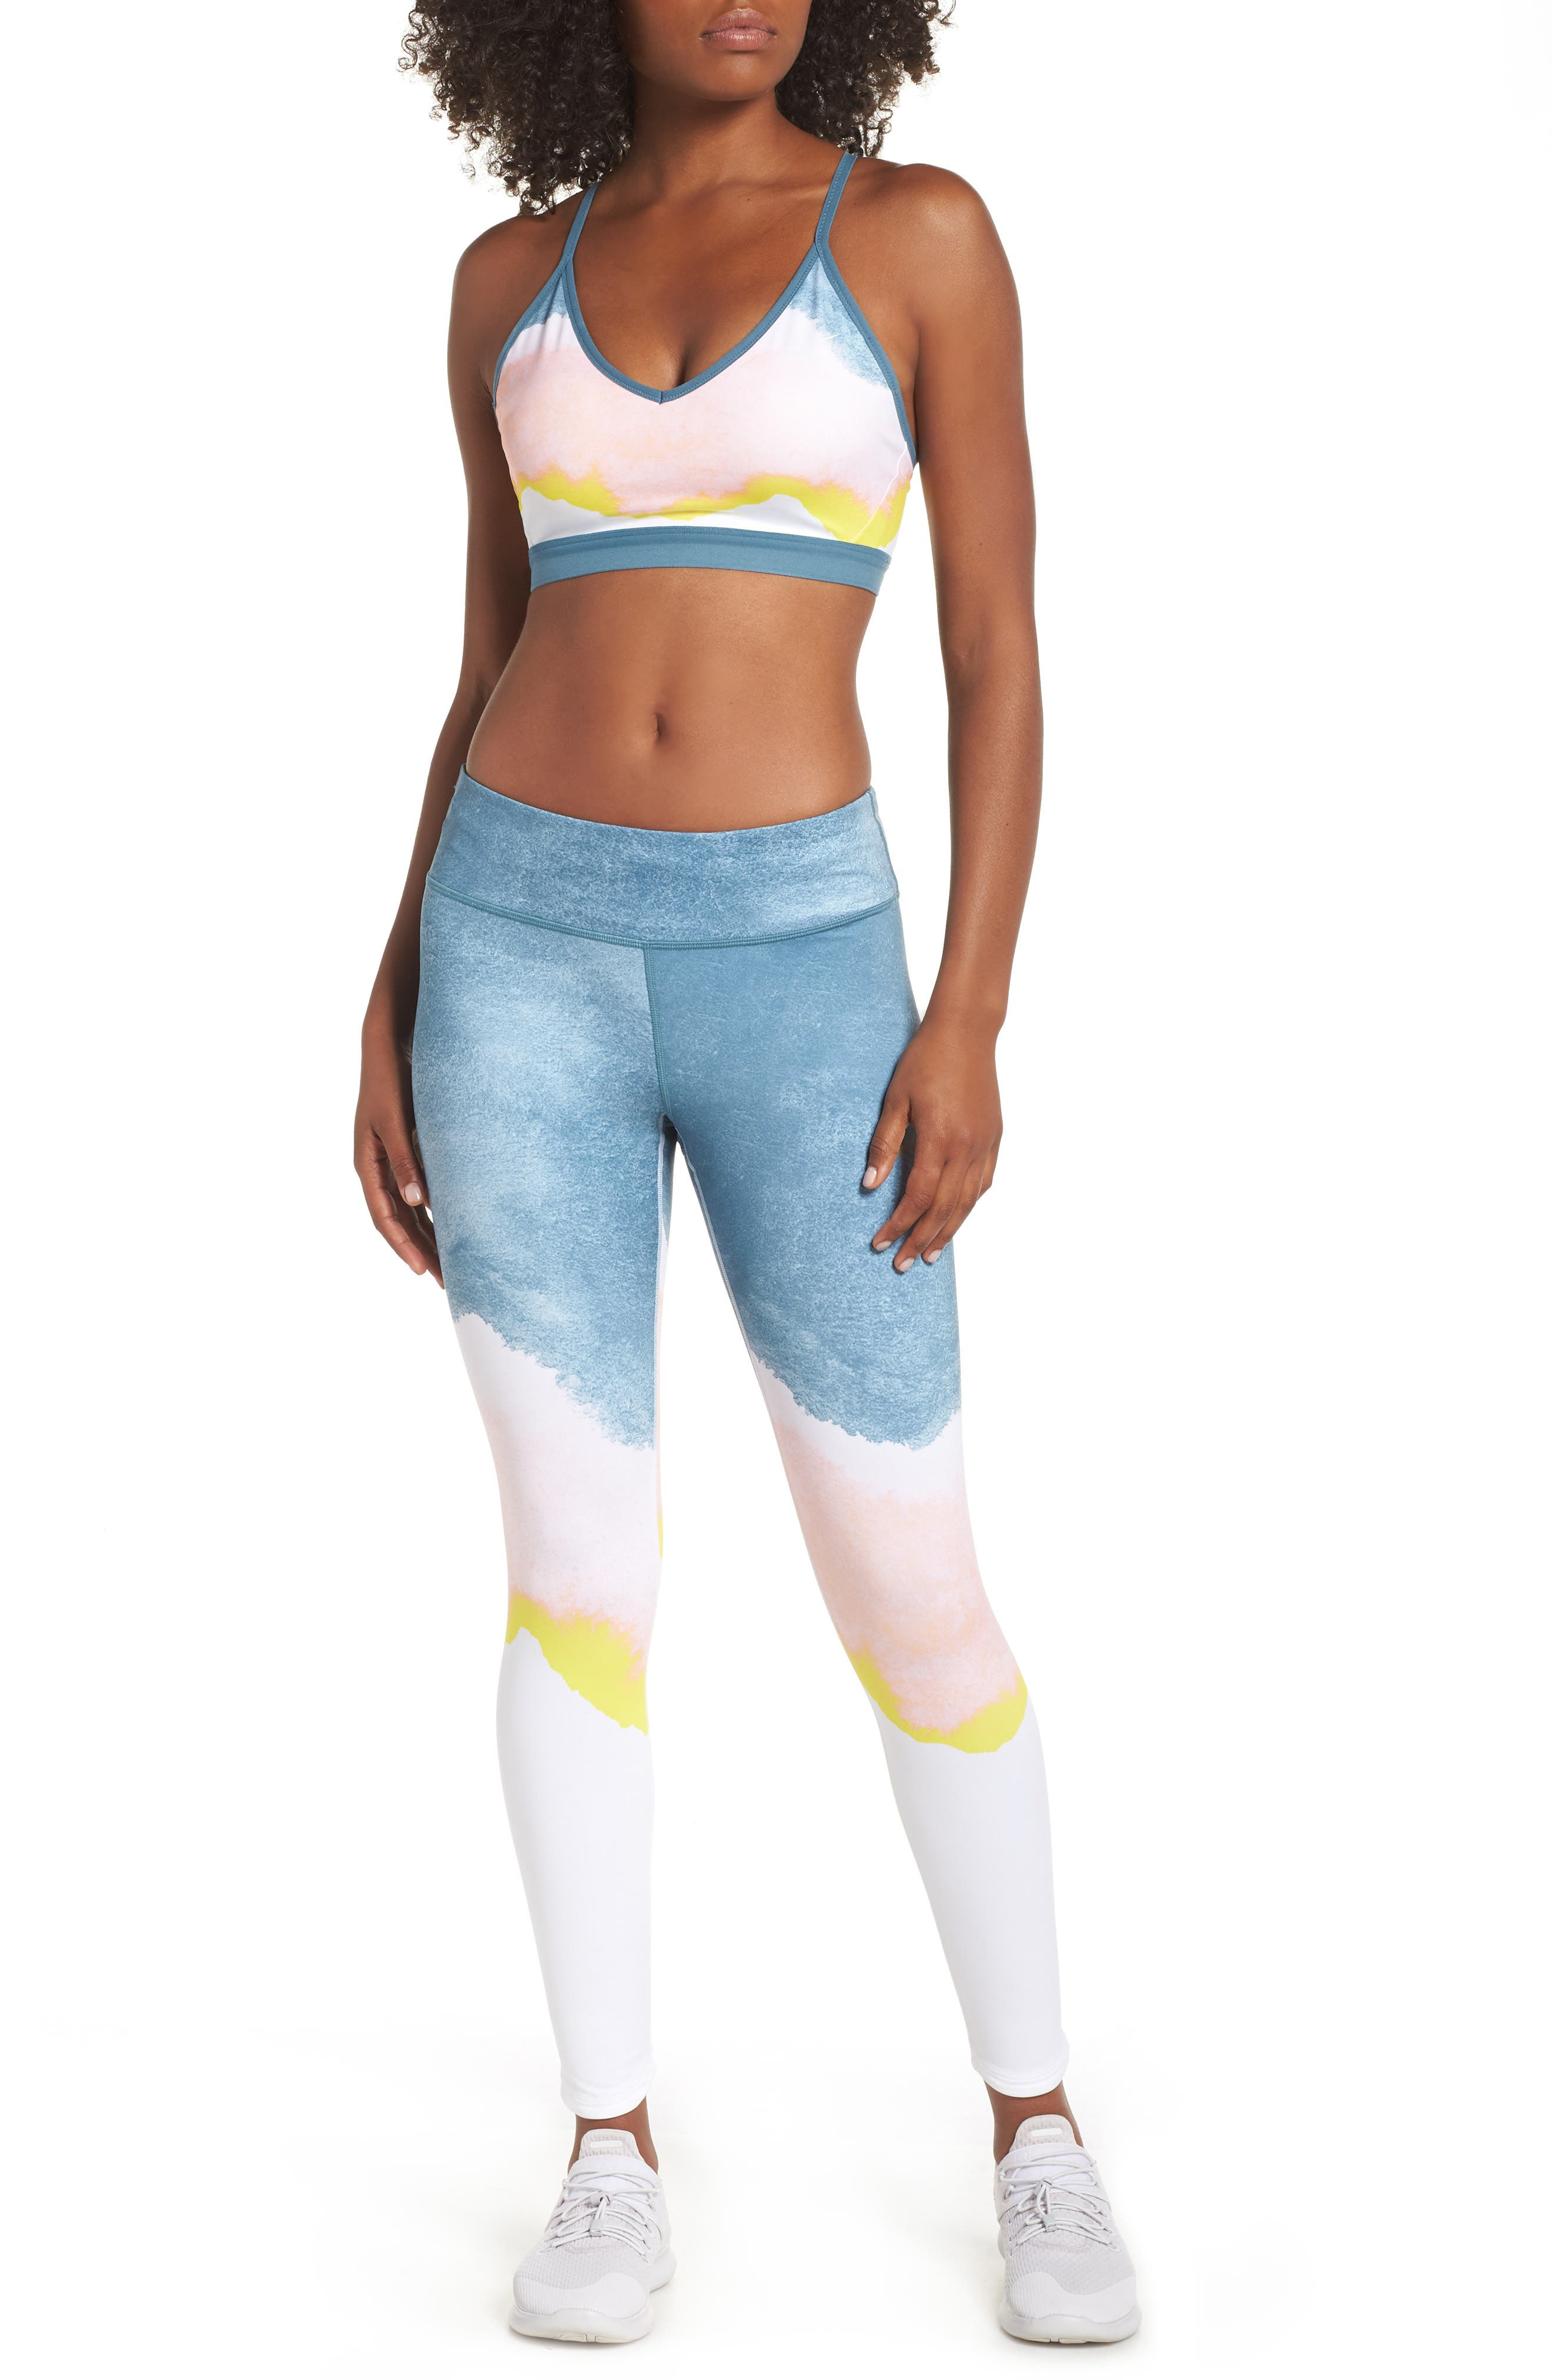 Indy Artist Sports Bra,                             Alternate thumbnail 9, color,                             WHITE/ CELESTIAL TEAL/ WHITE